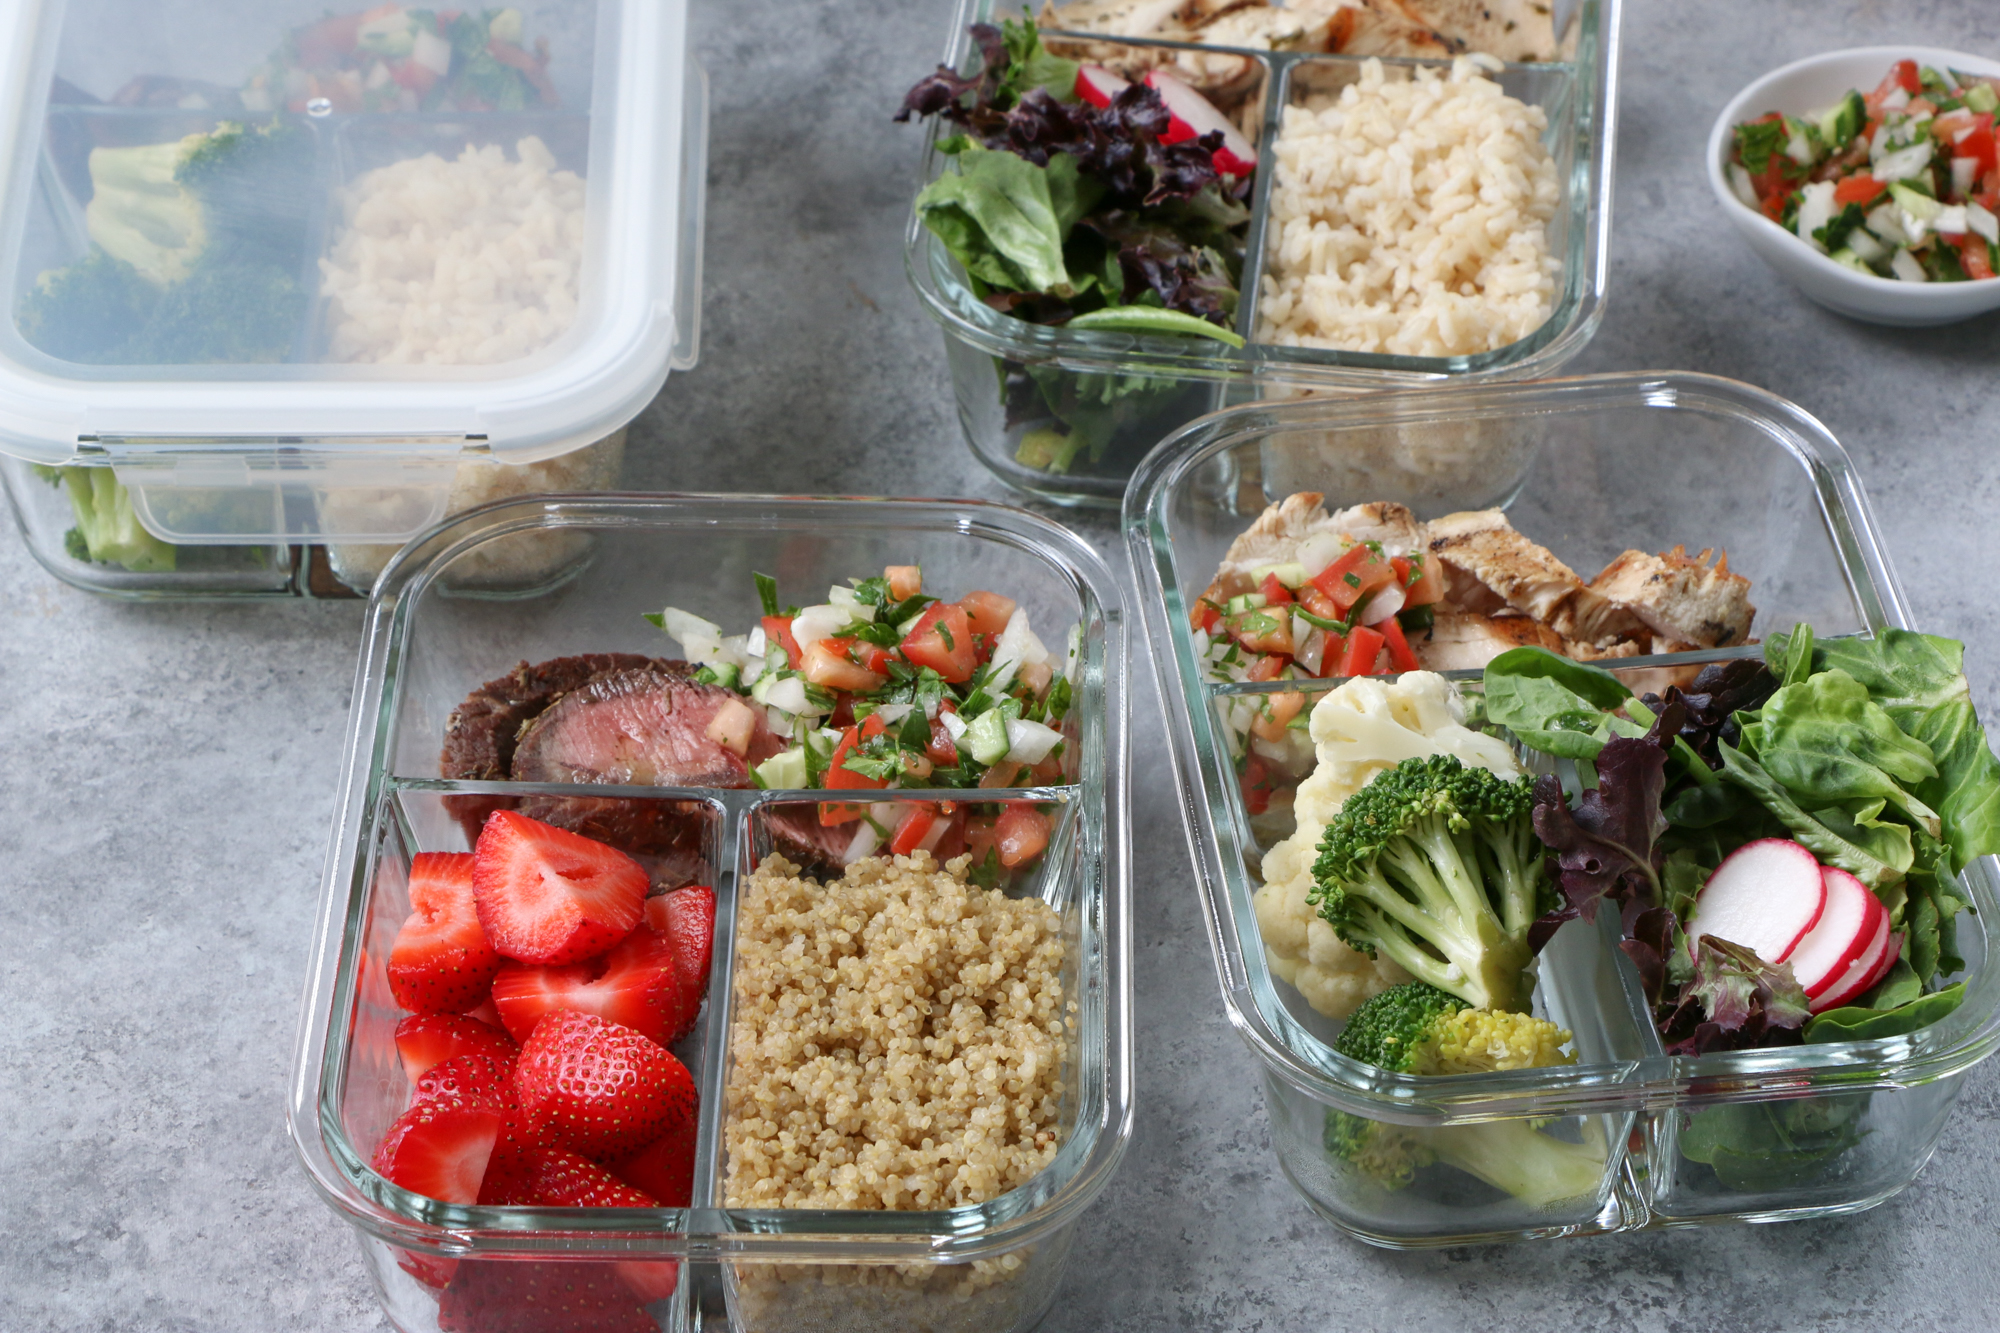 Make Ahead Meals with ALDI: Marinated Flat Iron Steak and chicken with brown rice, quinoa and steamed vegetables.